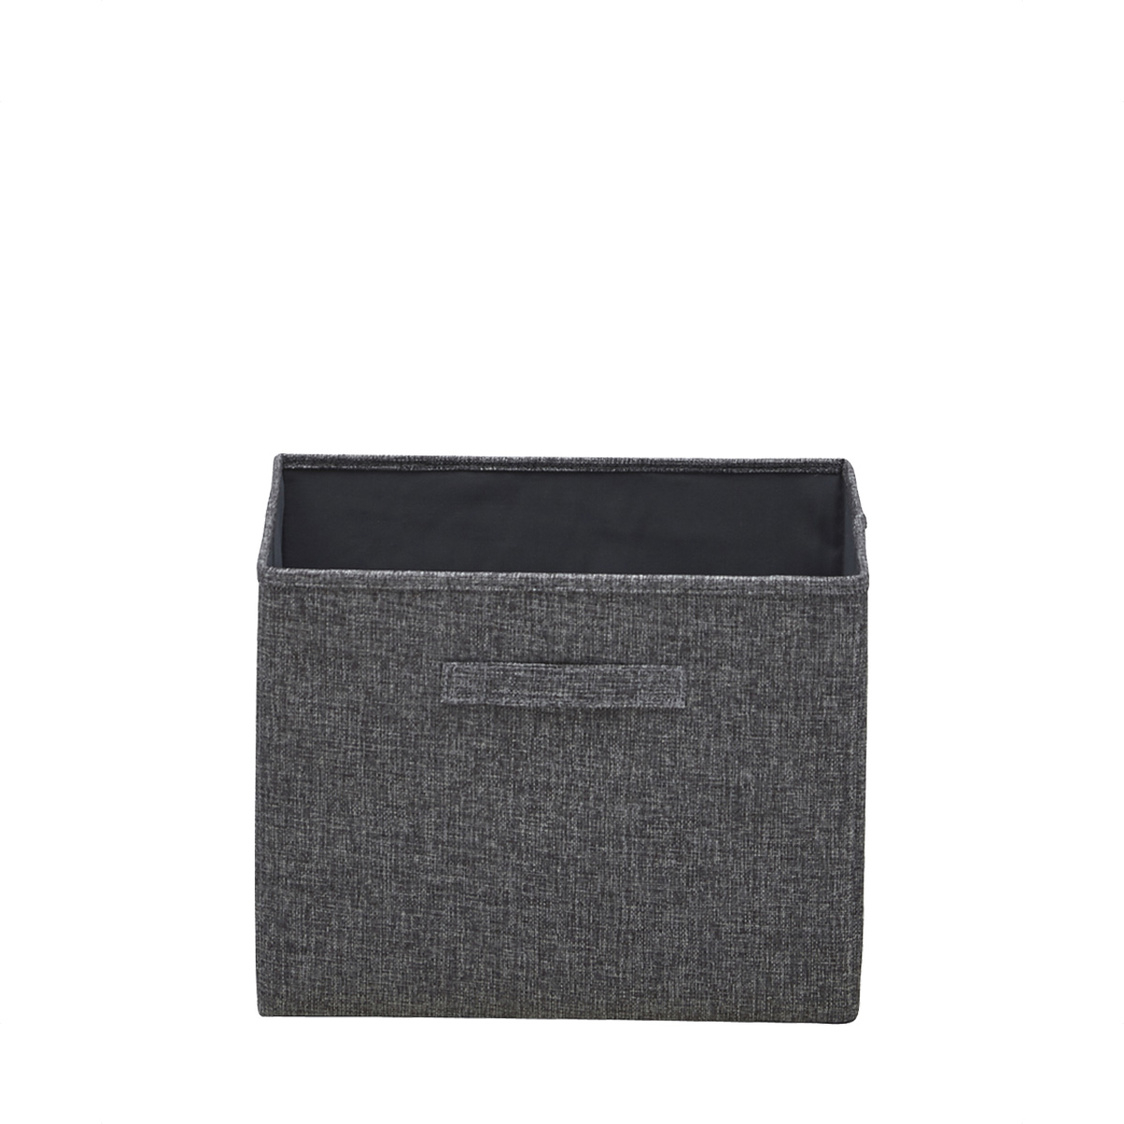 GLEN STUDIO Fabric Storage Box HSPC1000P-2F1